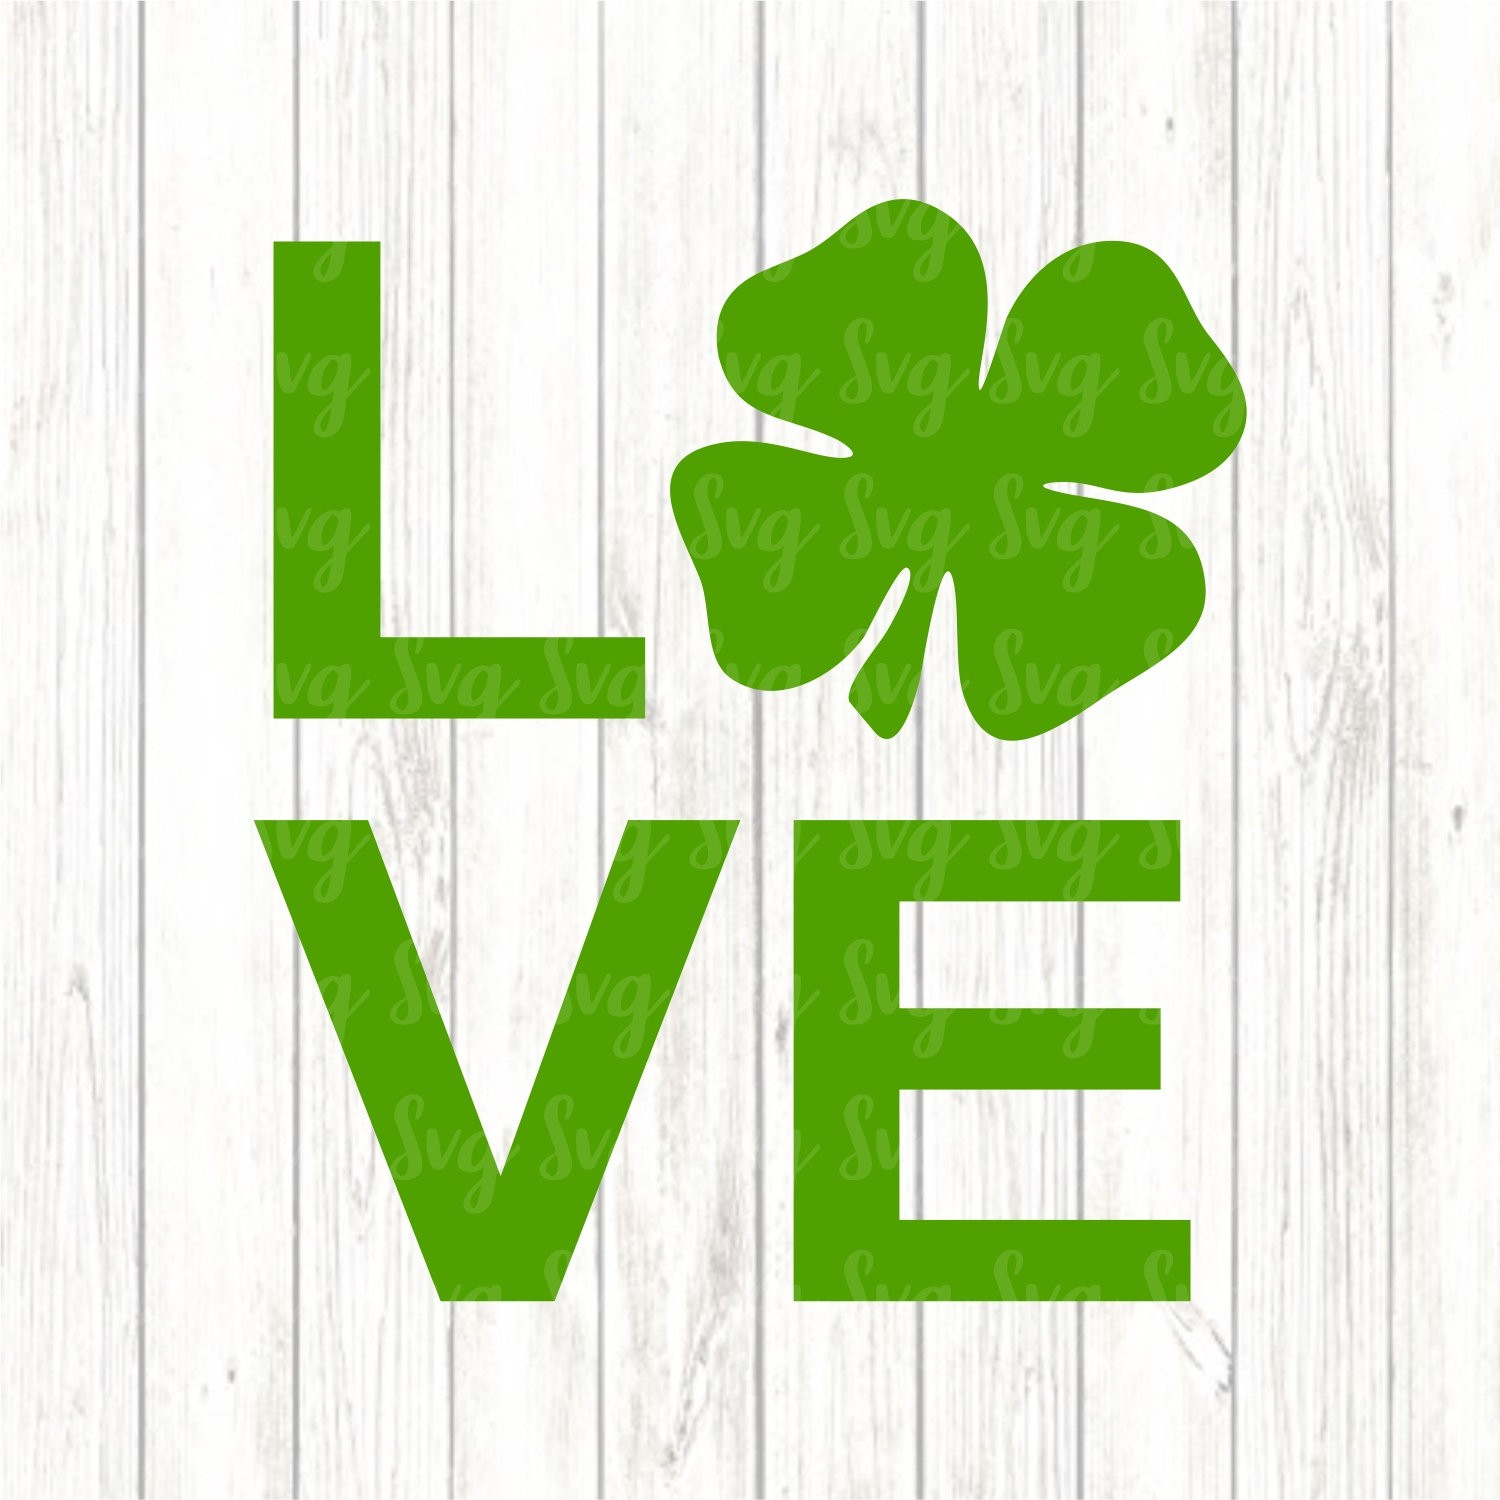 St paddy s day t shirt clipart jpg picture free stock Love svg,Love Shamrock svg,Shamrock svg,St.Patrick's Day svg,Lucky  Clipart,Lucky tshirt,crafty cuttable,Cricut Design,Silhouette Design picture free stock